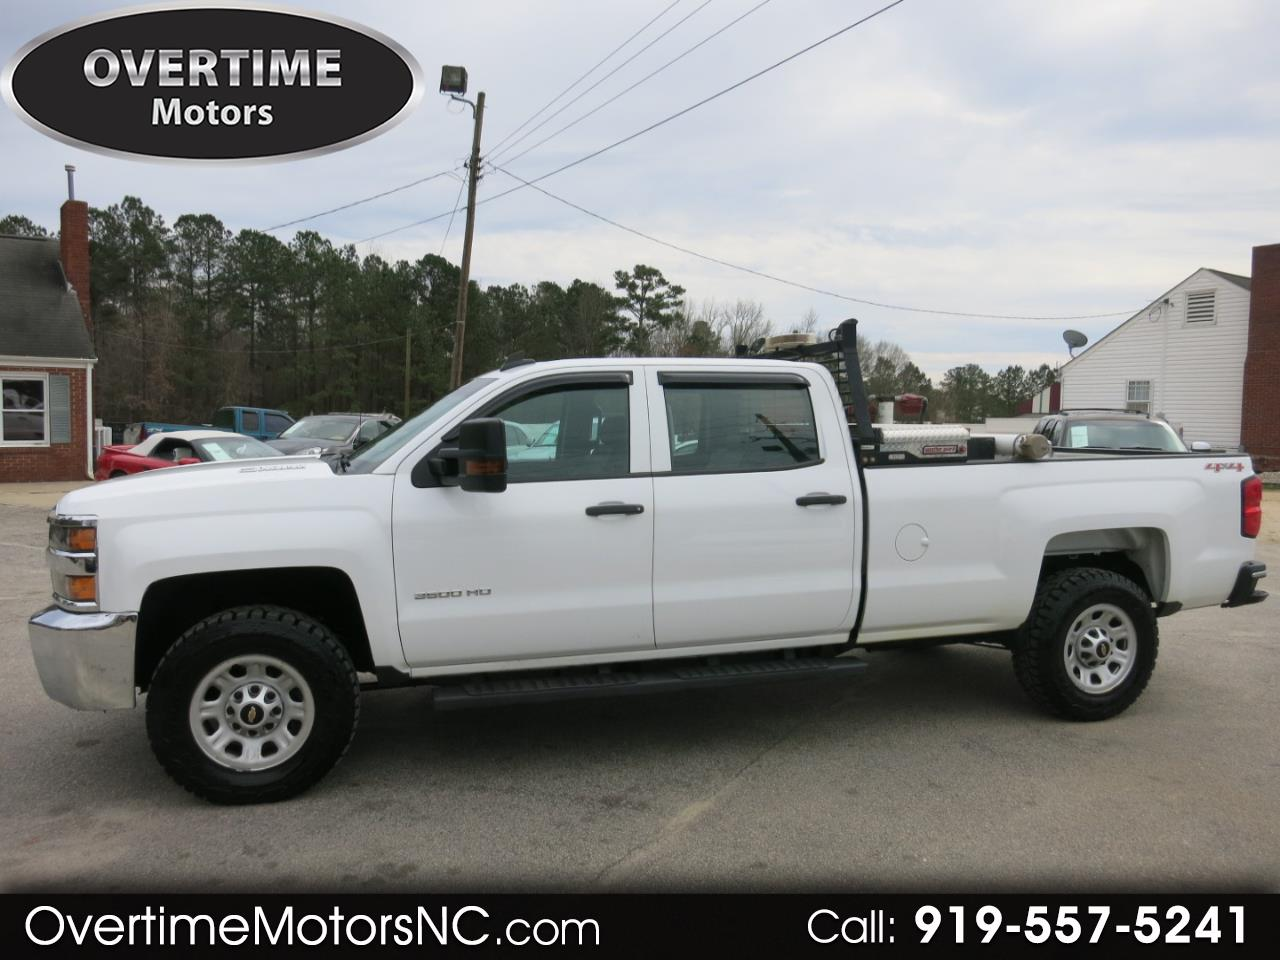 2015 Chevrolet Silverado 3500HD Built After Aug 14 4WD Crew Cab 167.7